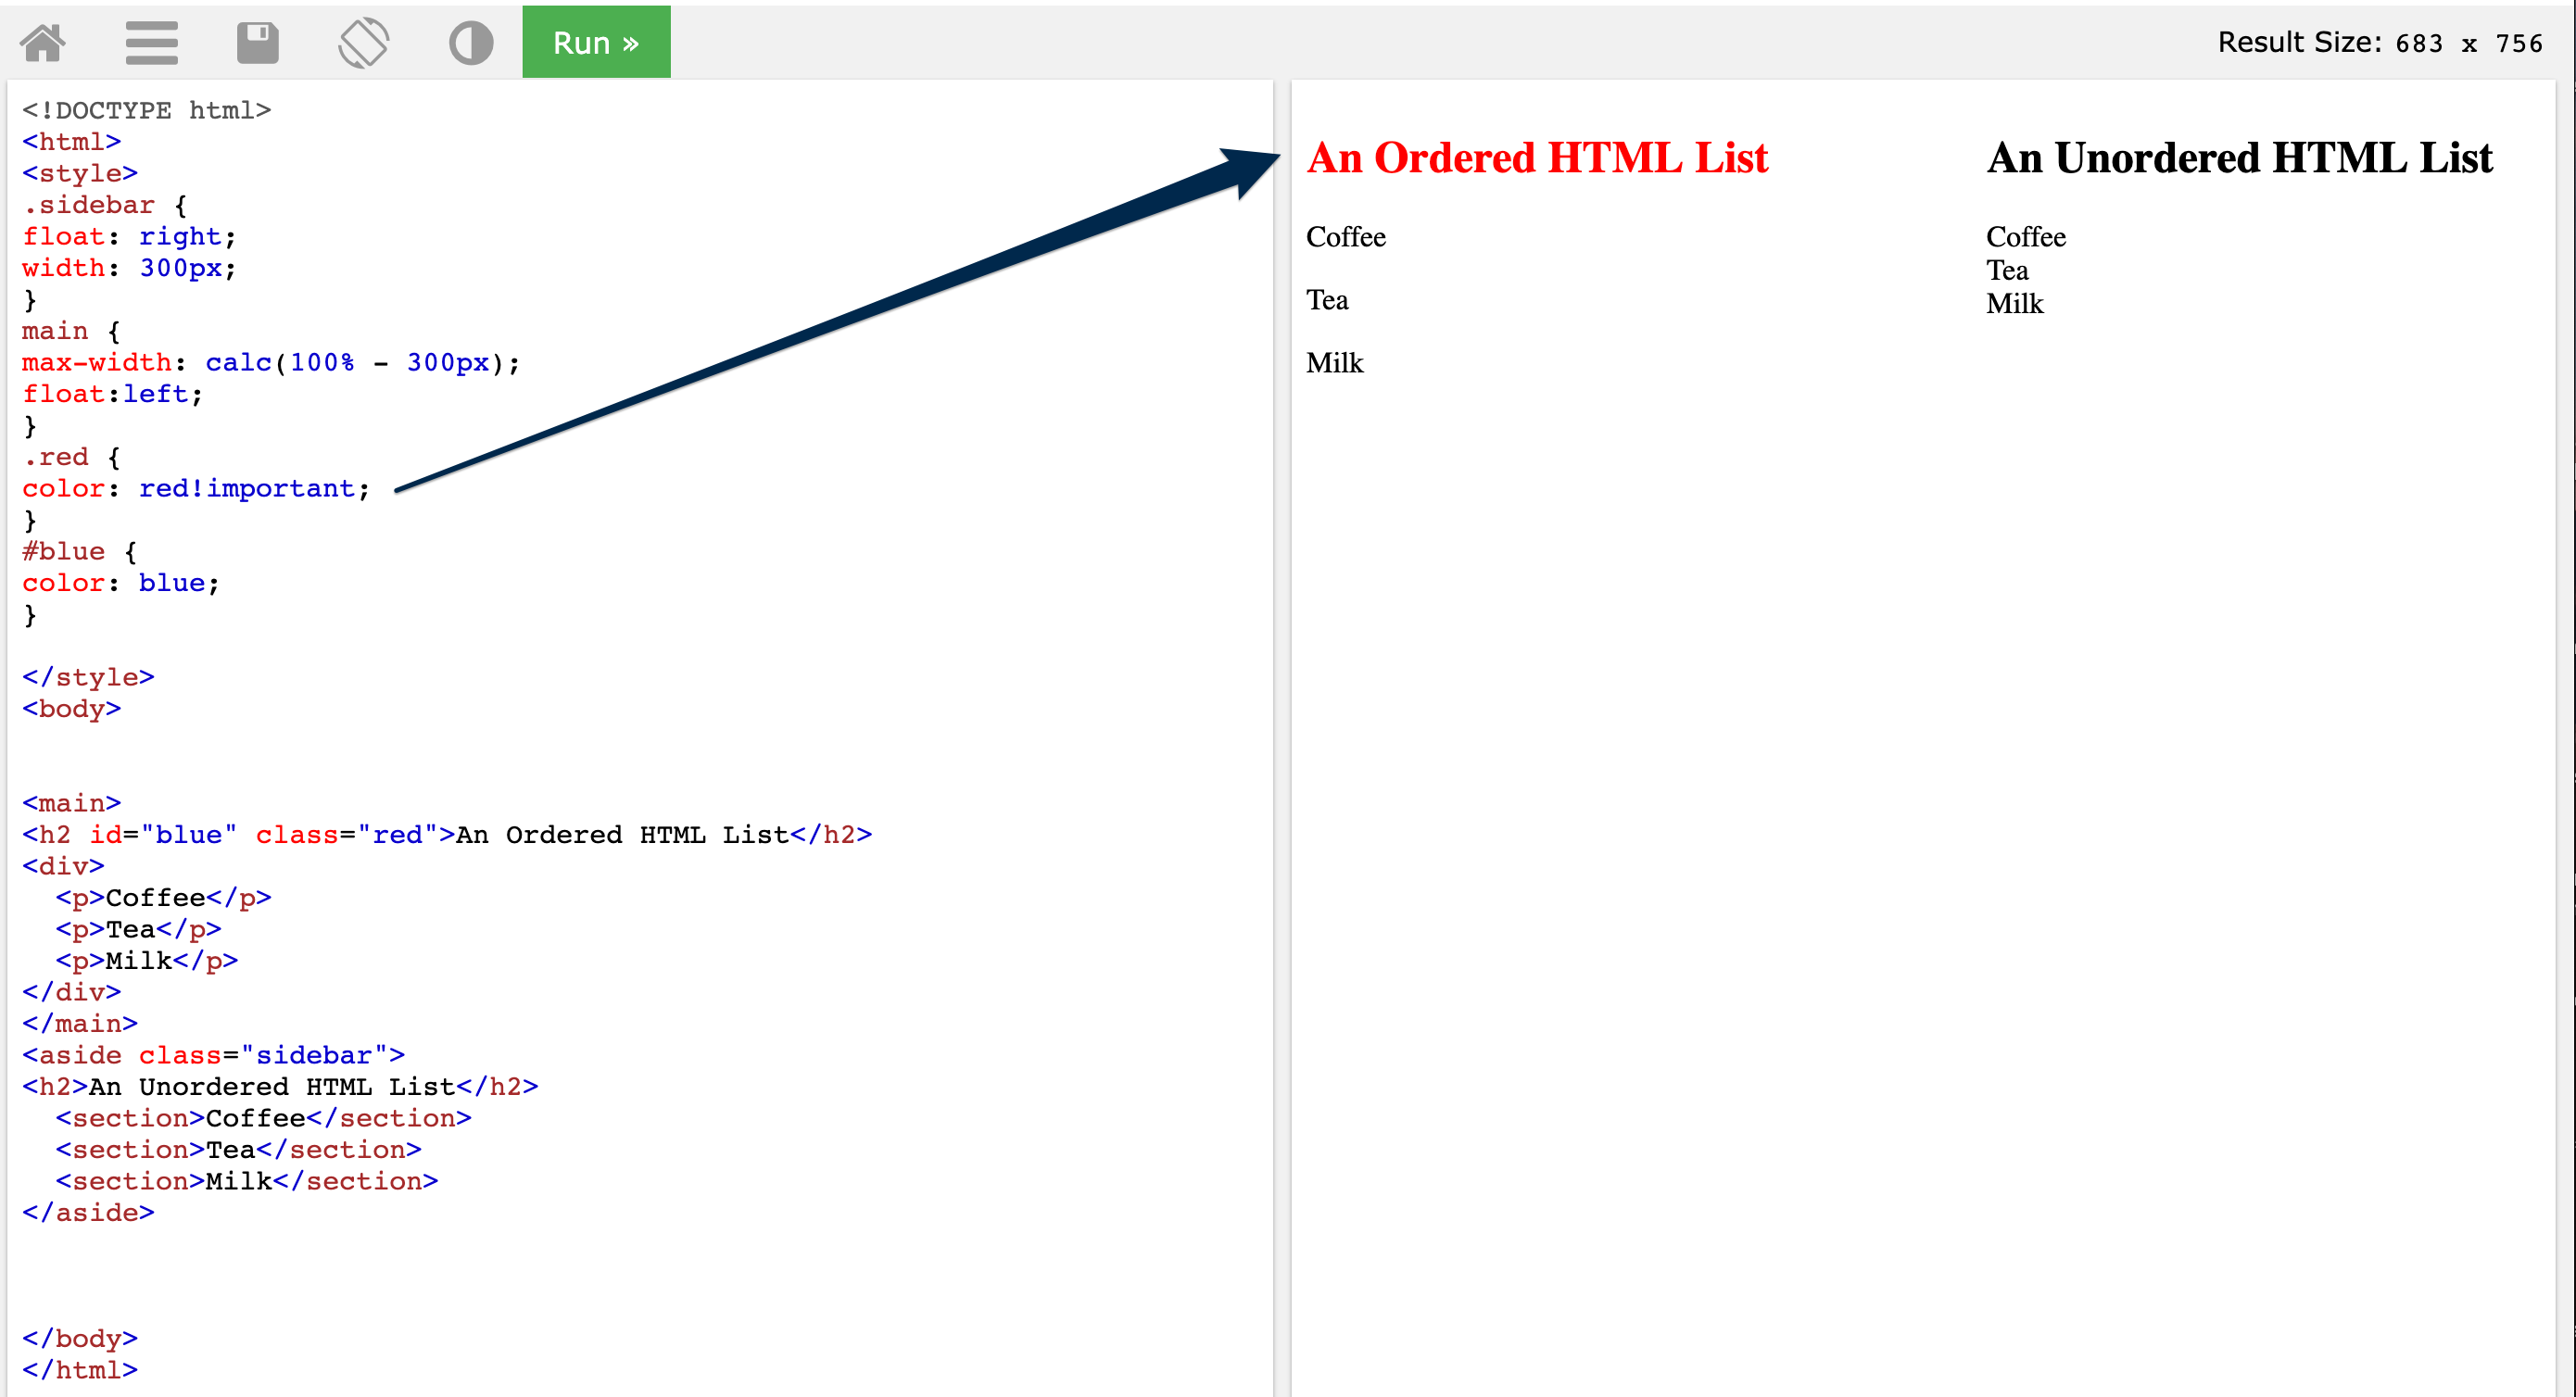 On the right the heading for 'an ordered html list' with a class of red and an id of blue is red and the heading for 'an unordered html list is black'. On the left the style .red is set to color: red!important; then #blue style is set to blue;